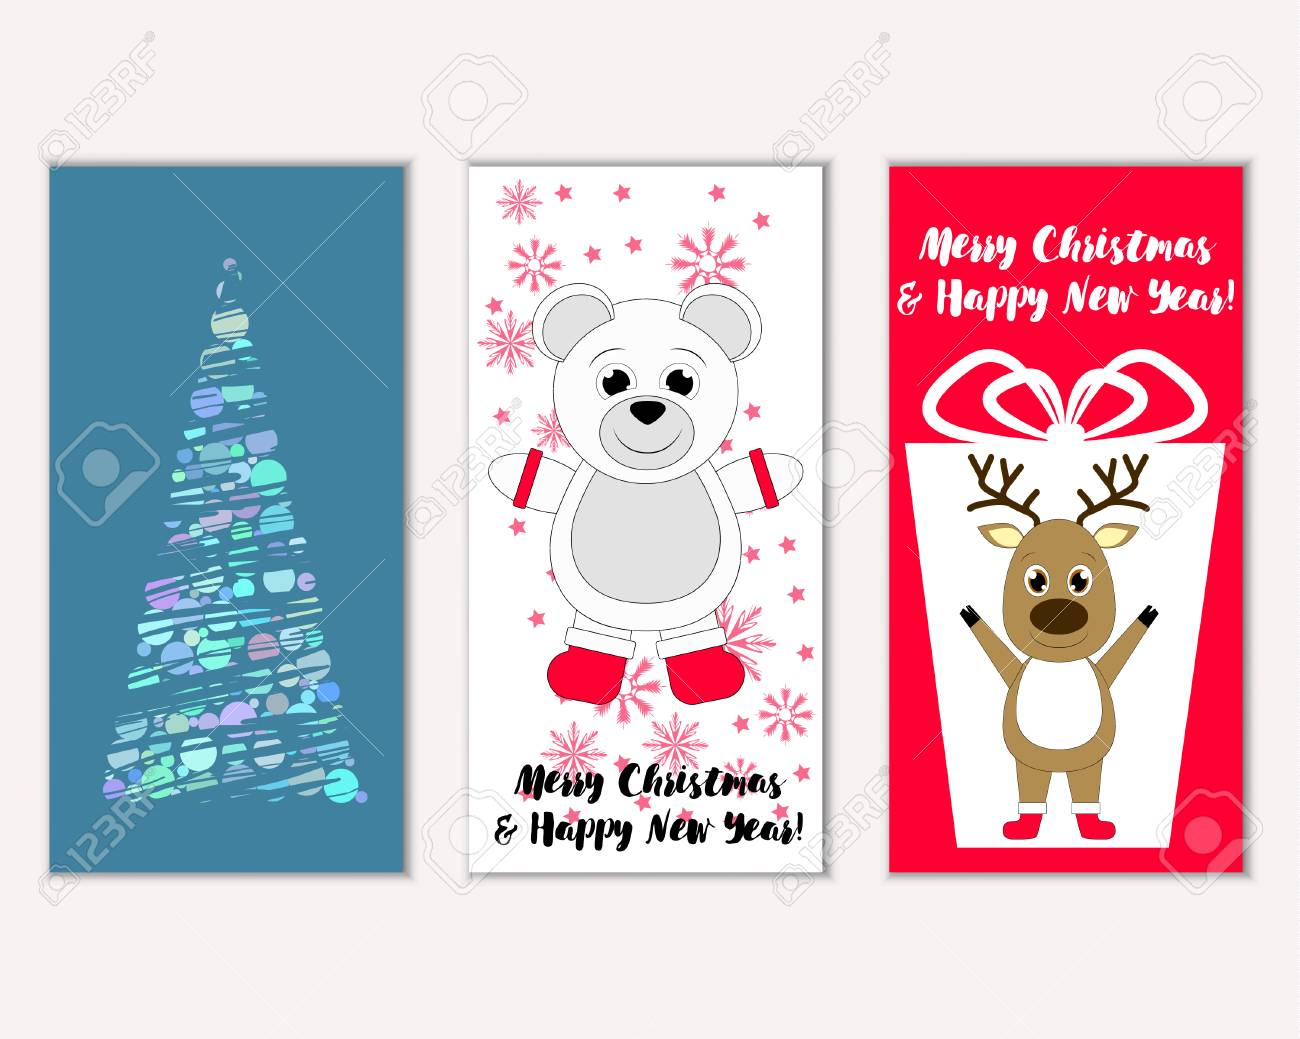 Vector Illustration Of Merry Christmas And Happy New Year Greeting